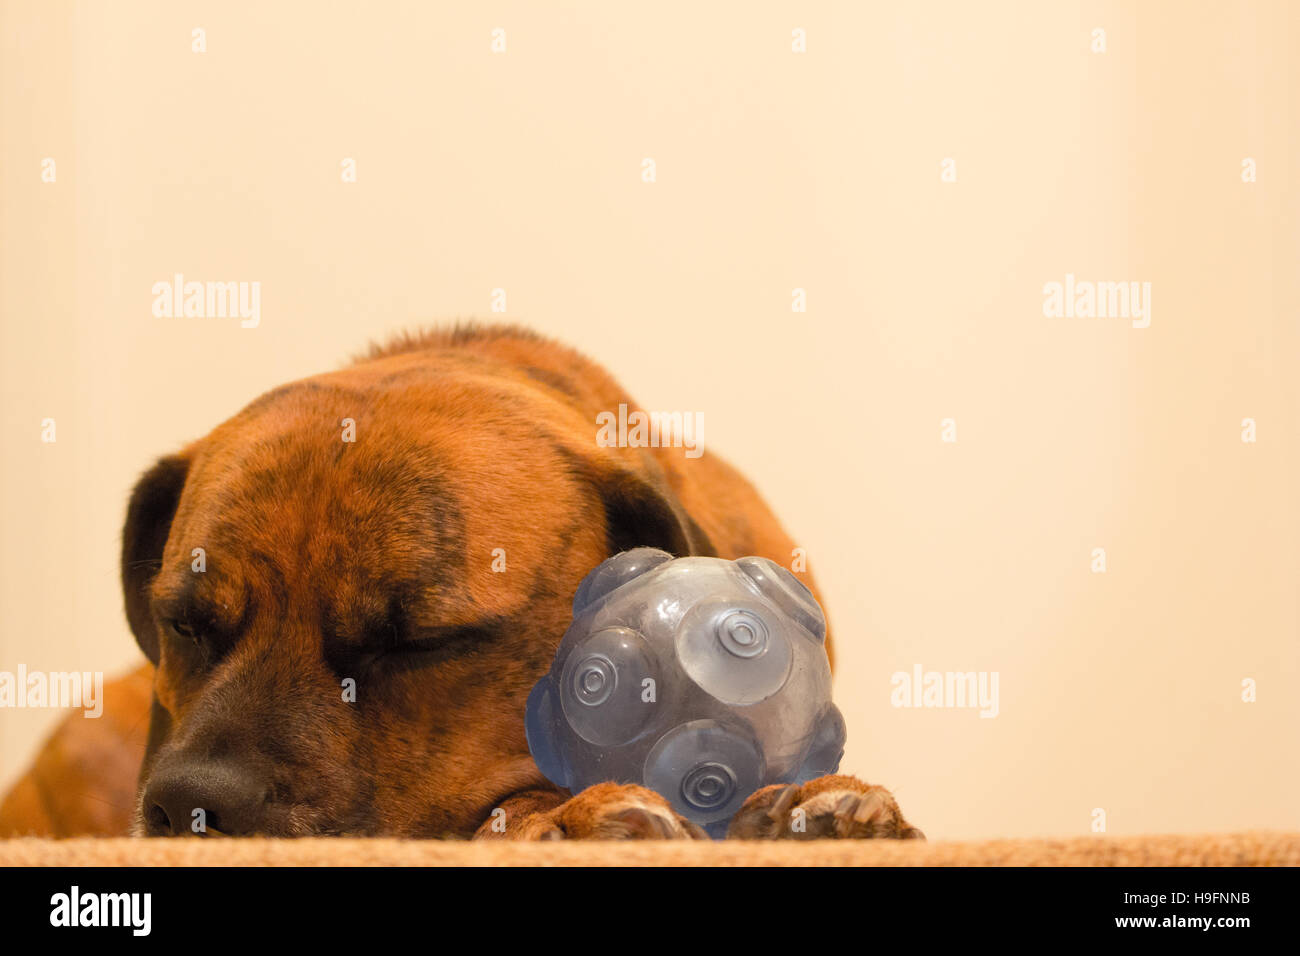 Dog Asleep on the floor with toy ball - Stock Image